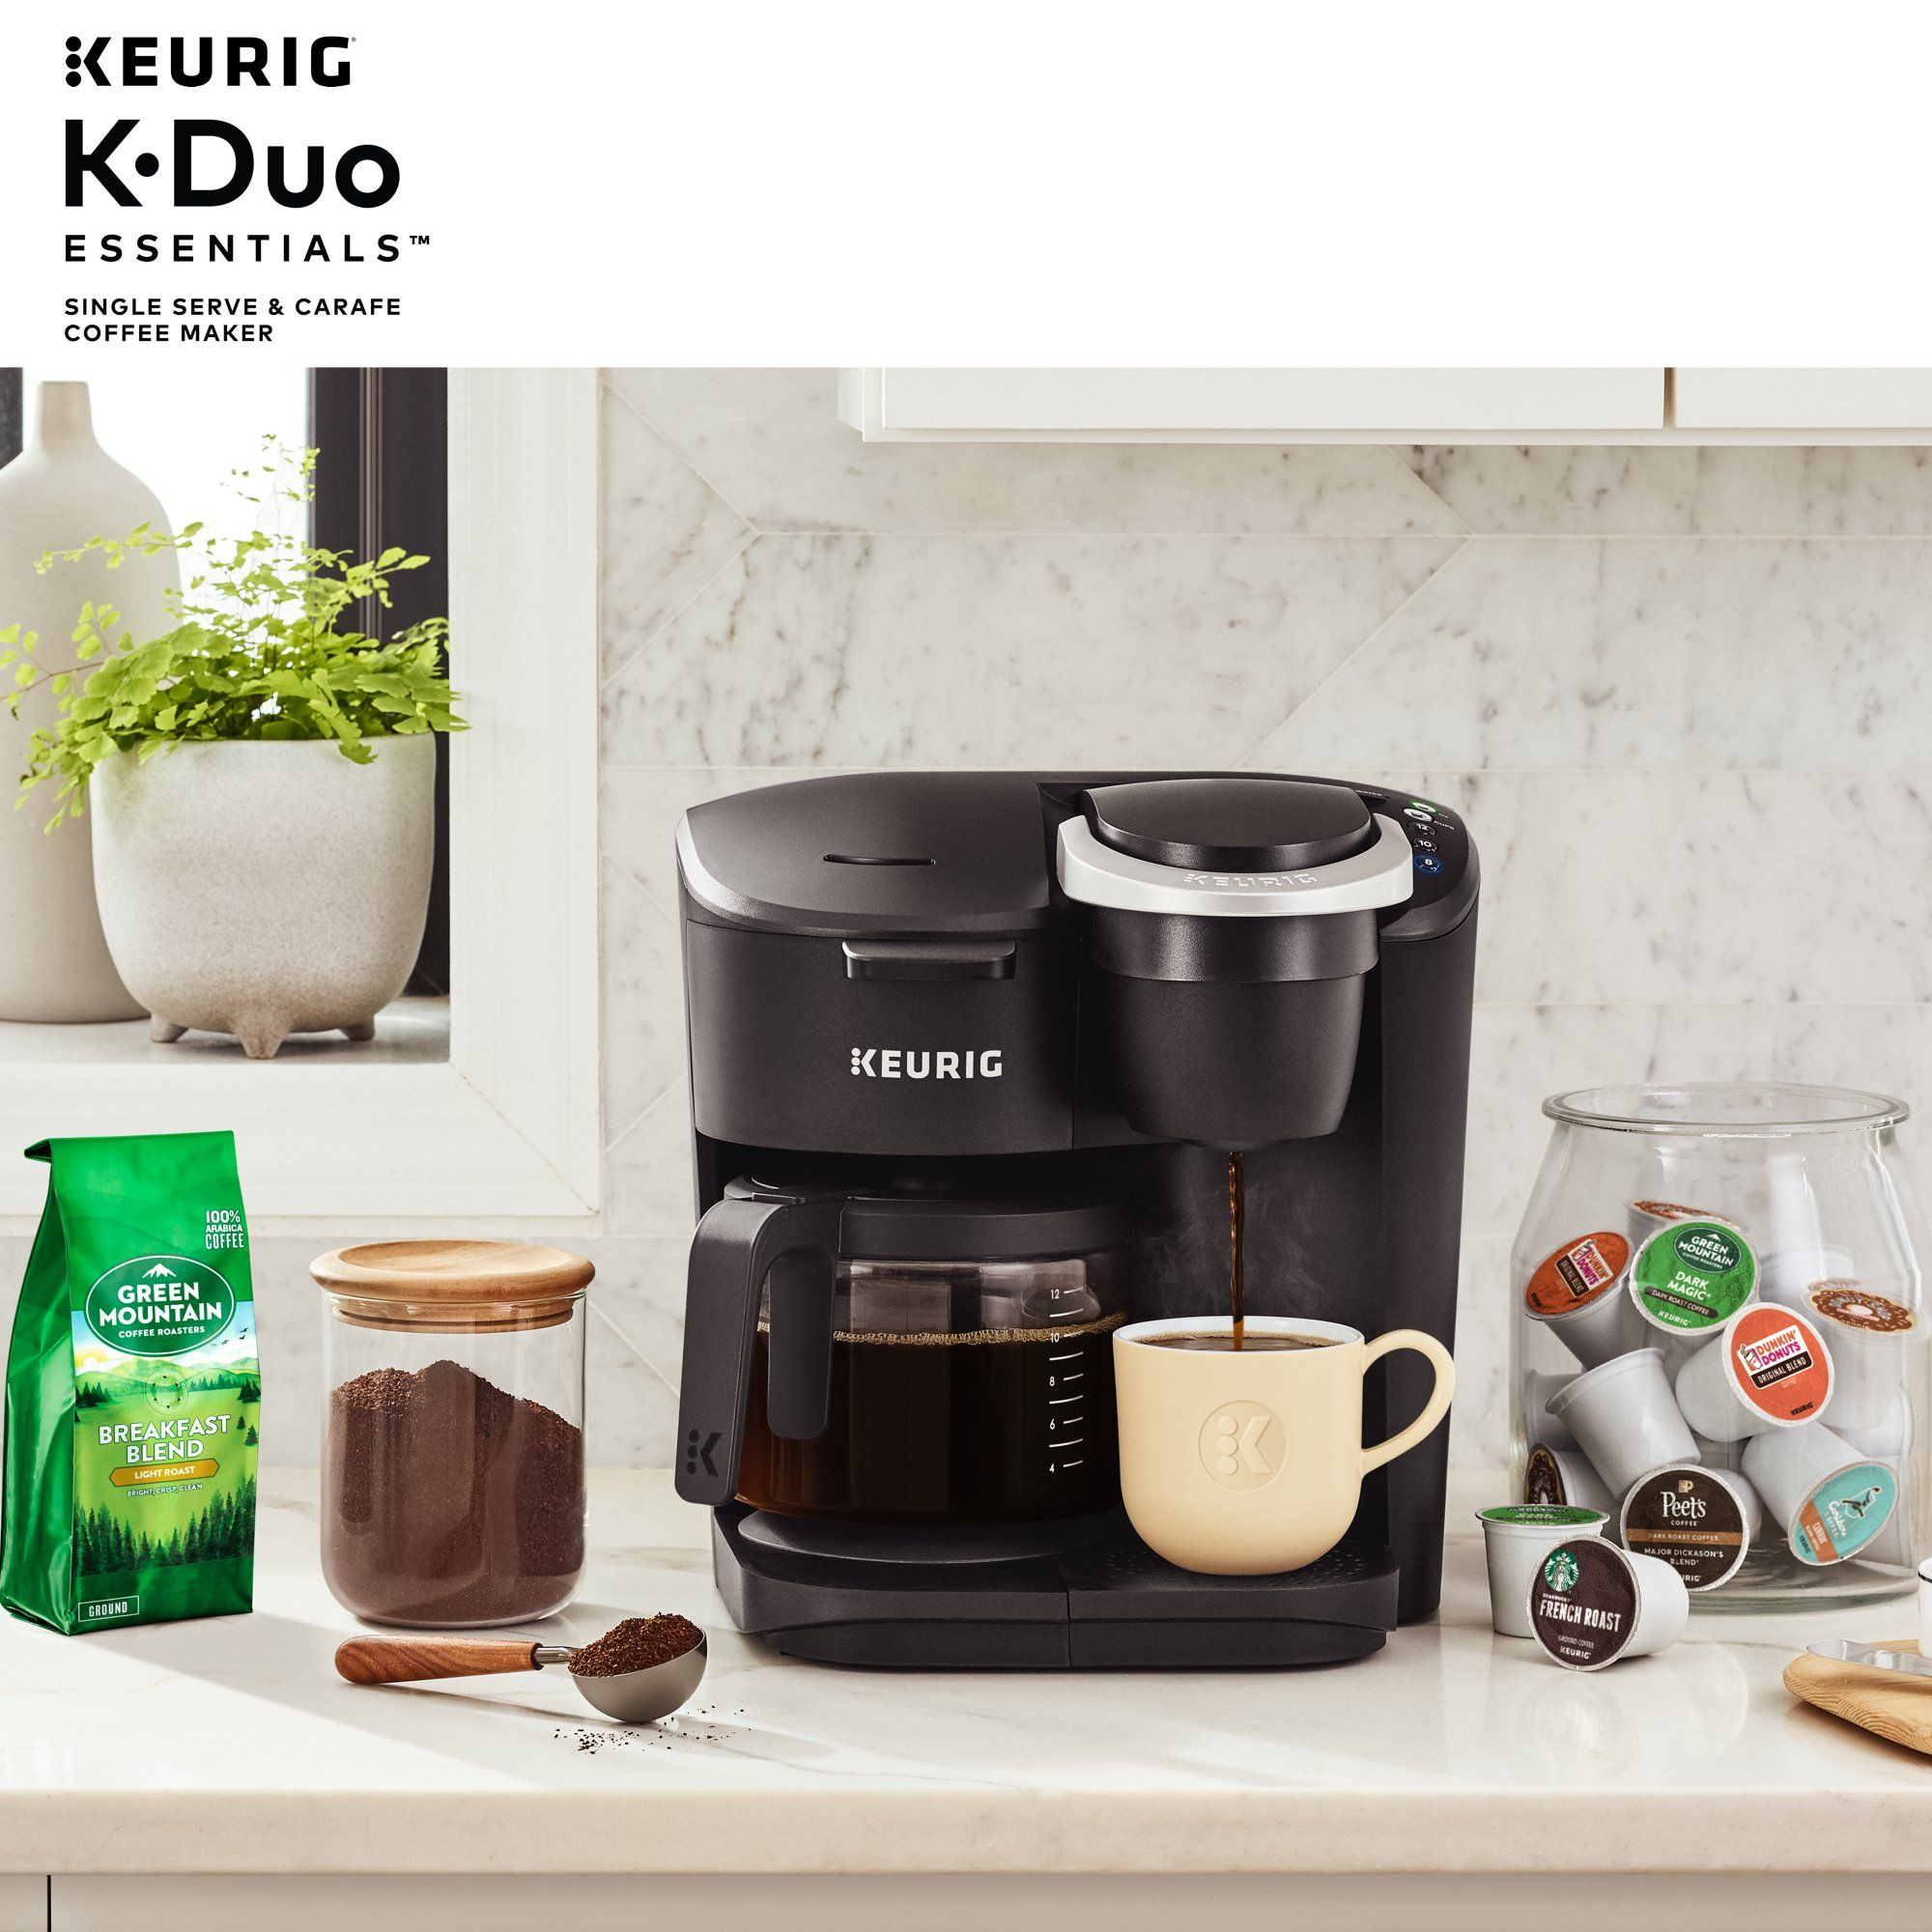 Keurig K Duo Essentials Coffee Maker With Single Serve K Cup Pod And 12 Cup Carafe Brewer Black Walmart Com In 2020 Coffee Maker Keurig Single Serve Coffee Makers